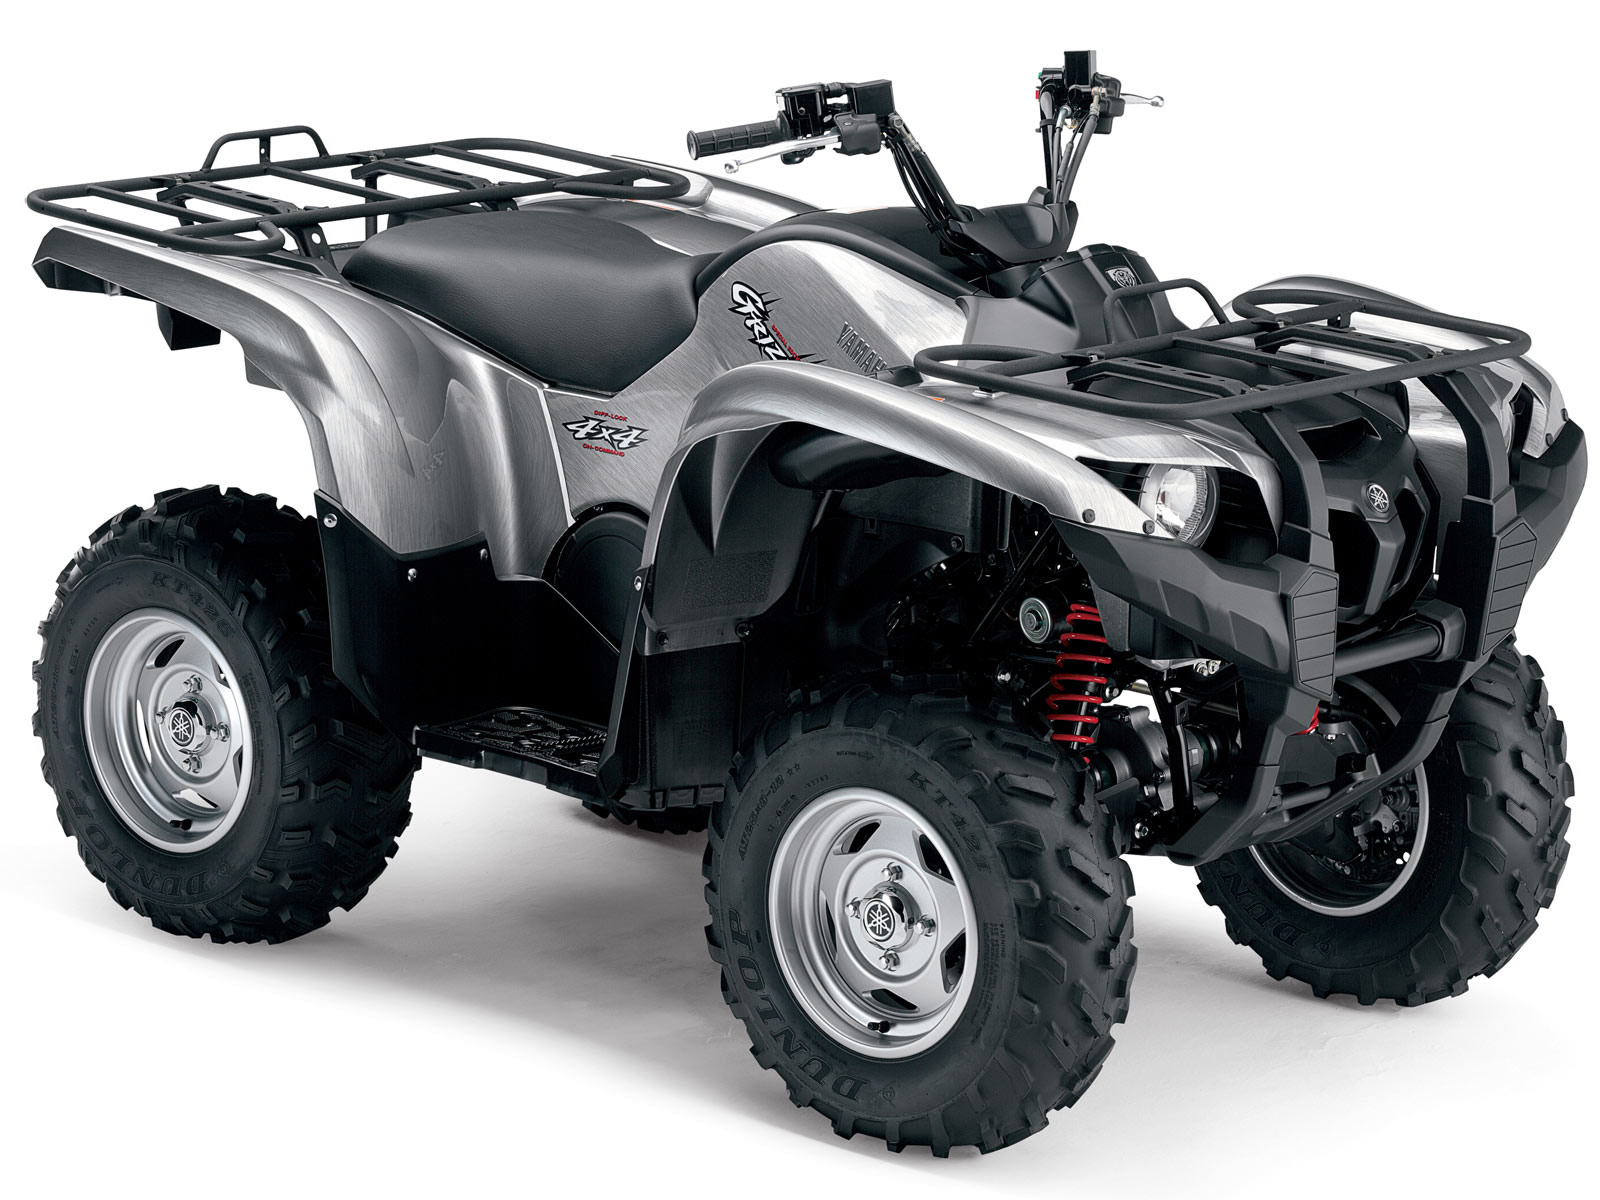 grizzly 700 fi 4x4 automotic 2007 yamaha atv pictures specs. Black Bedroom Furniture Sets. Home Design Ideas